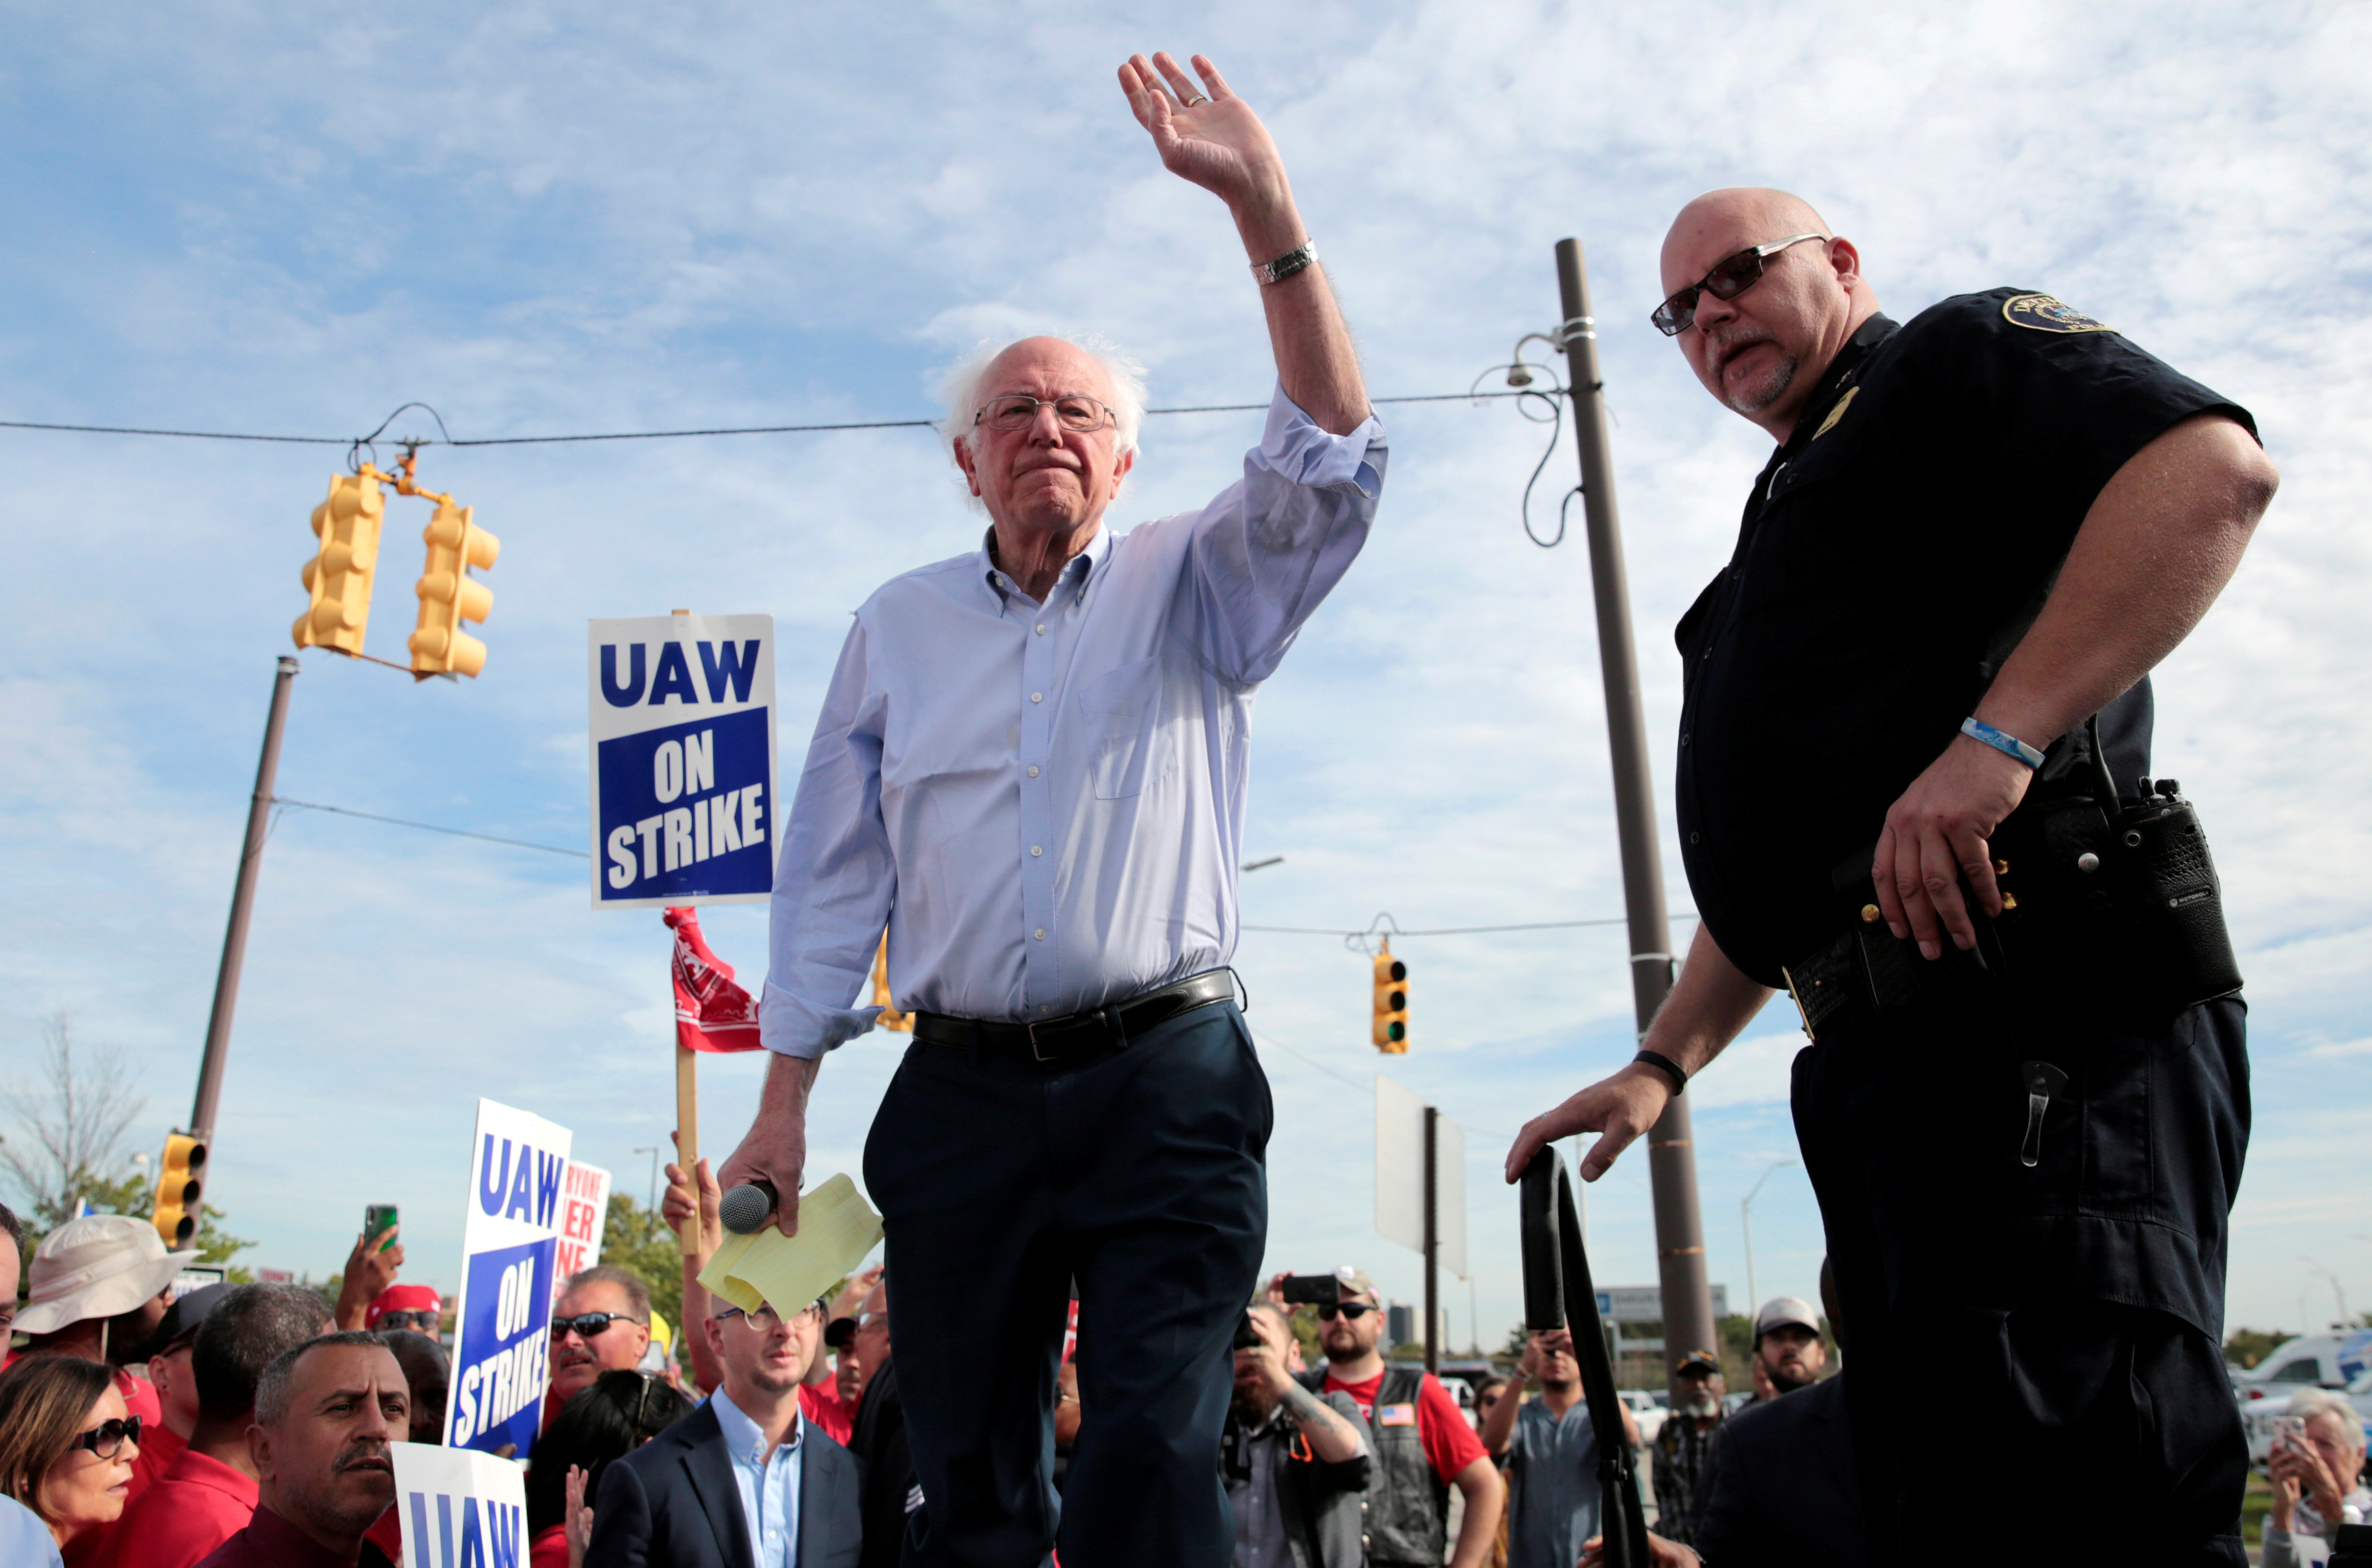 Democratic U.S. presidential candidate Senator Bernie Sanders addresses striking United Auto Workers (UAW) and supporters in Hamtramck, Michigan, U.S. September 25, 2019. REUTERS/Rebecca Cook